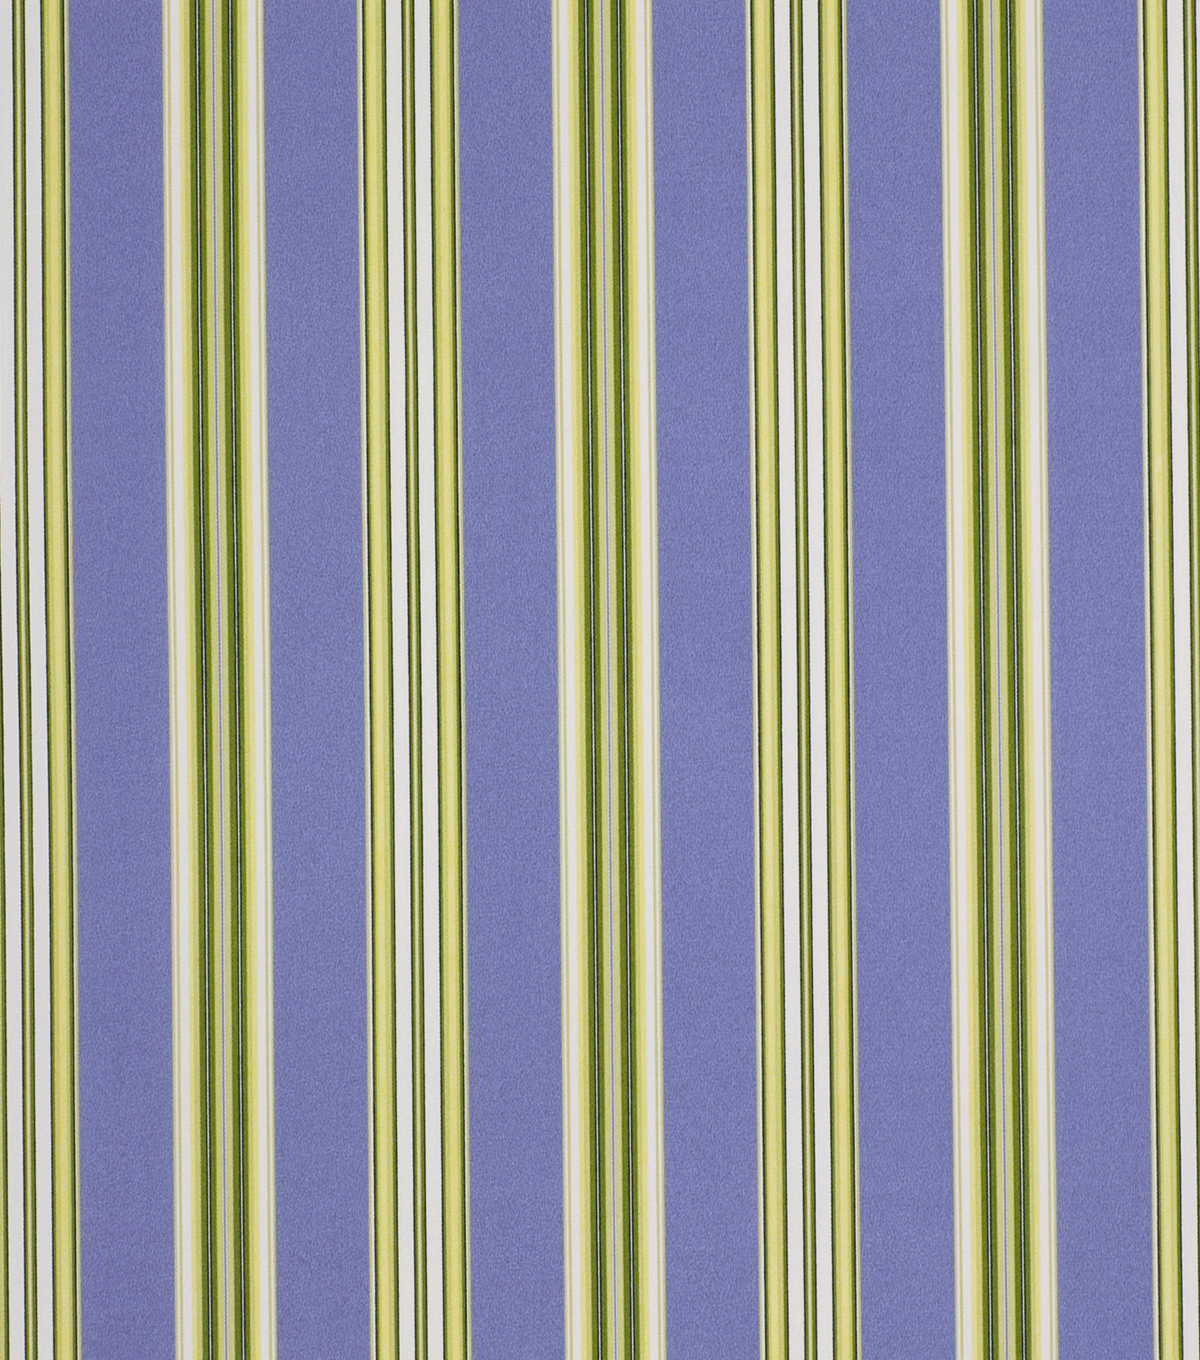 Home Decor 8\u0022x8\u0022 Fabric Swatch-Outdoor FabricPadgetville Sunblue